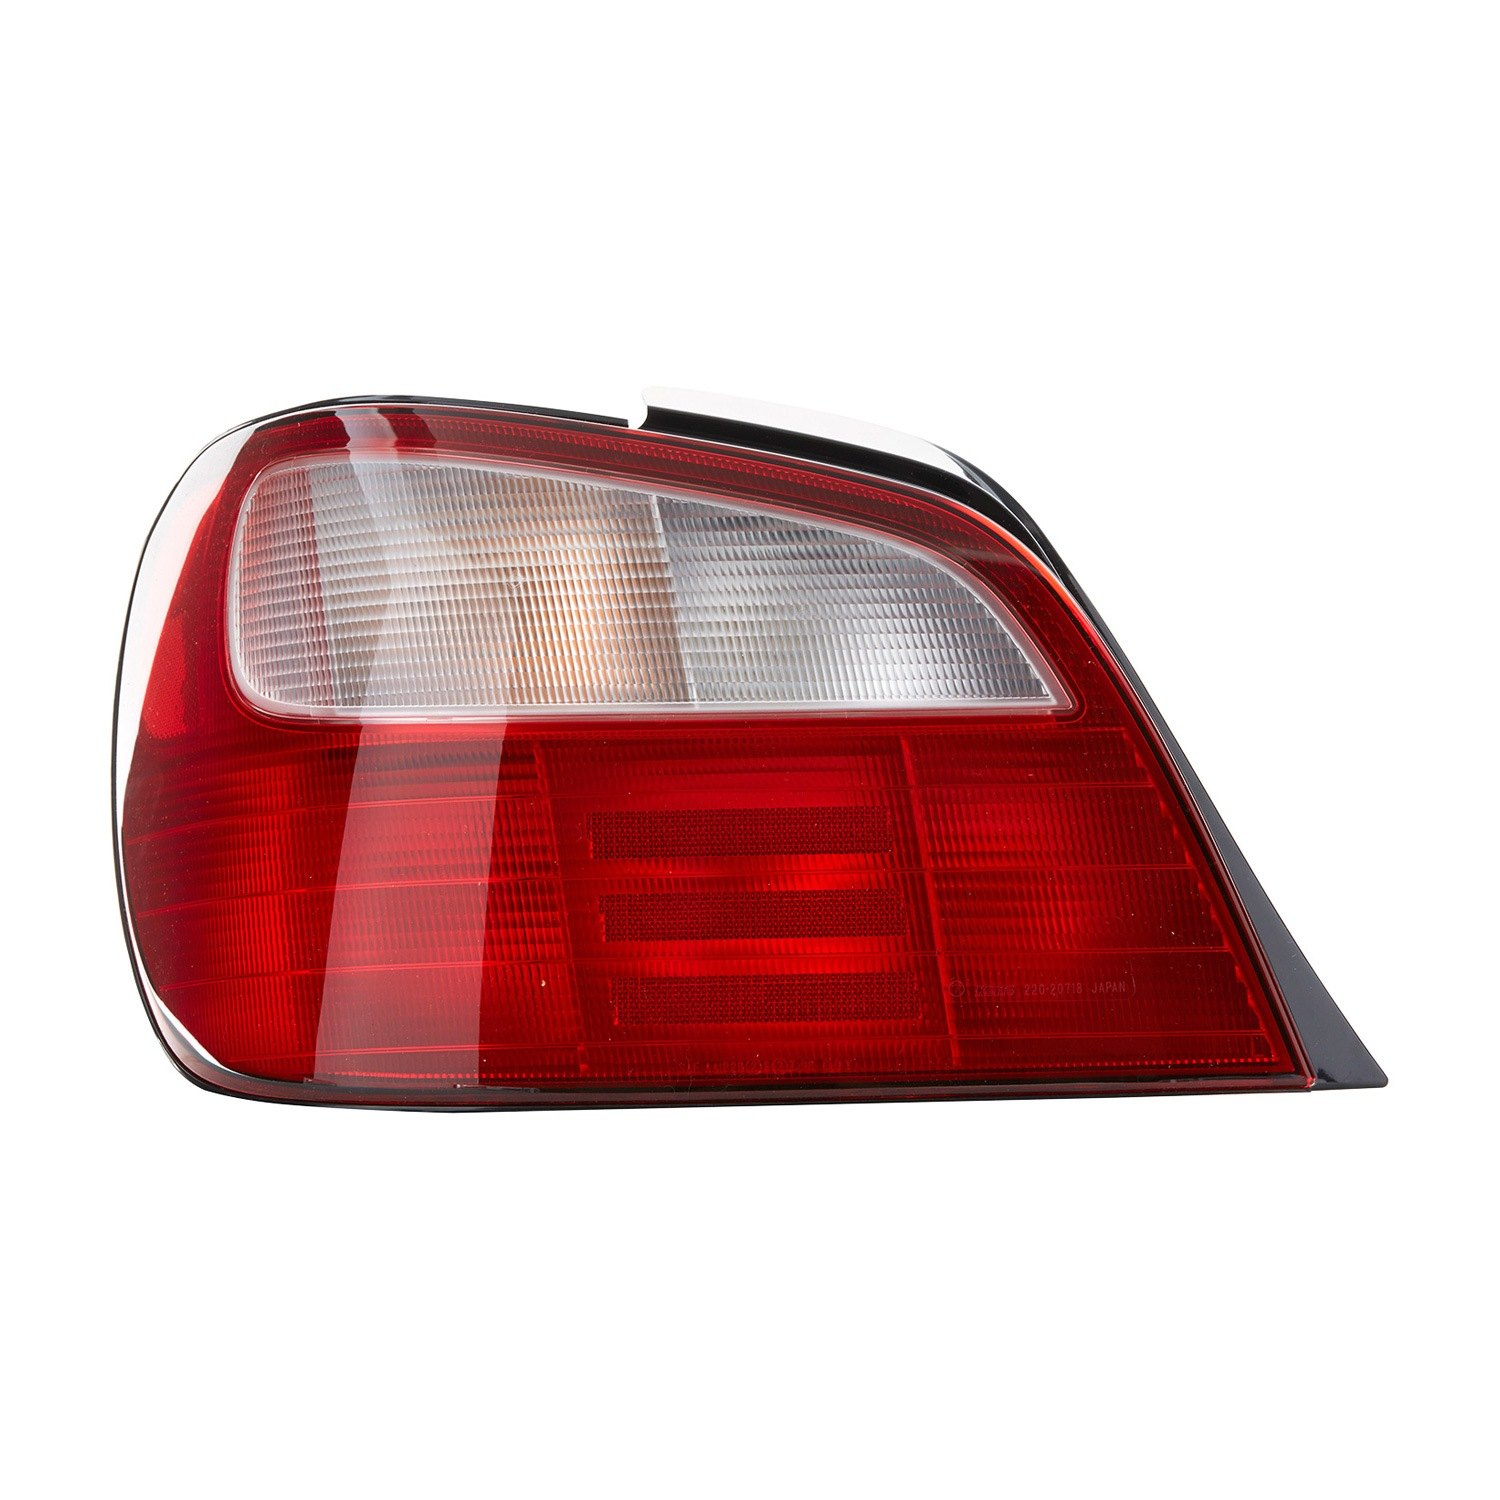 tyc subaru impreza sedan 2002 2003 replacement tail light. Black Bedroom Furniture Sets. Home Design Ideas